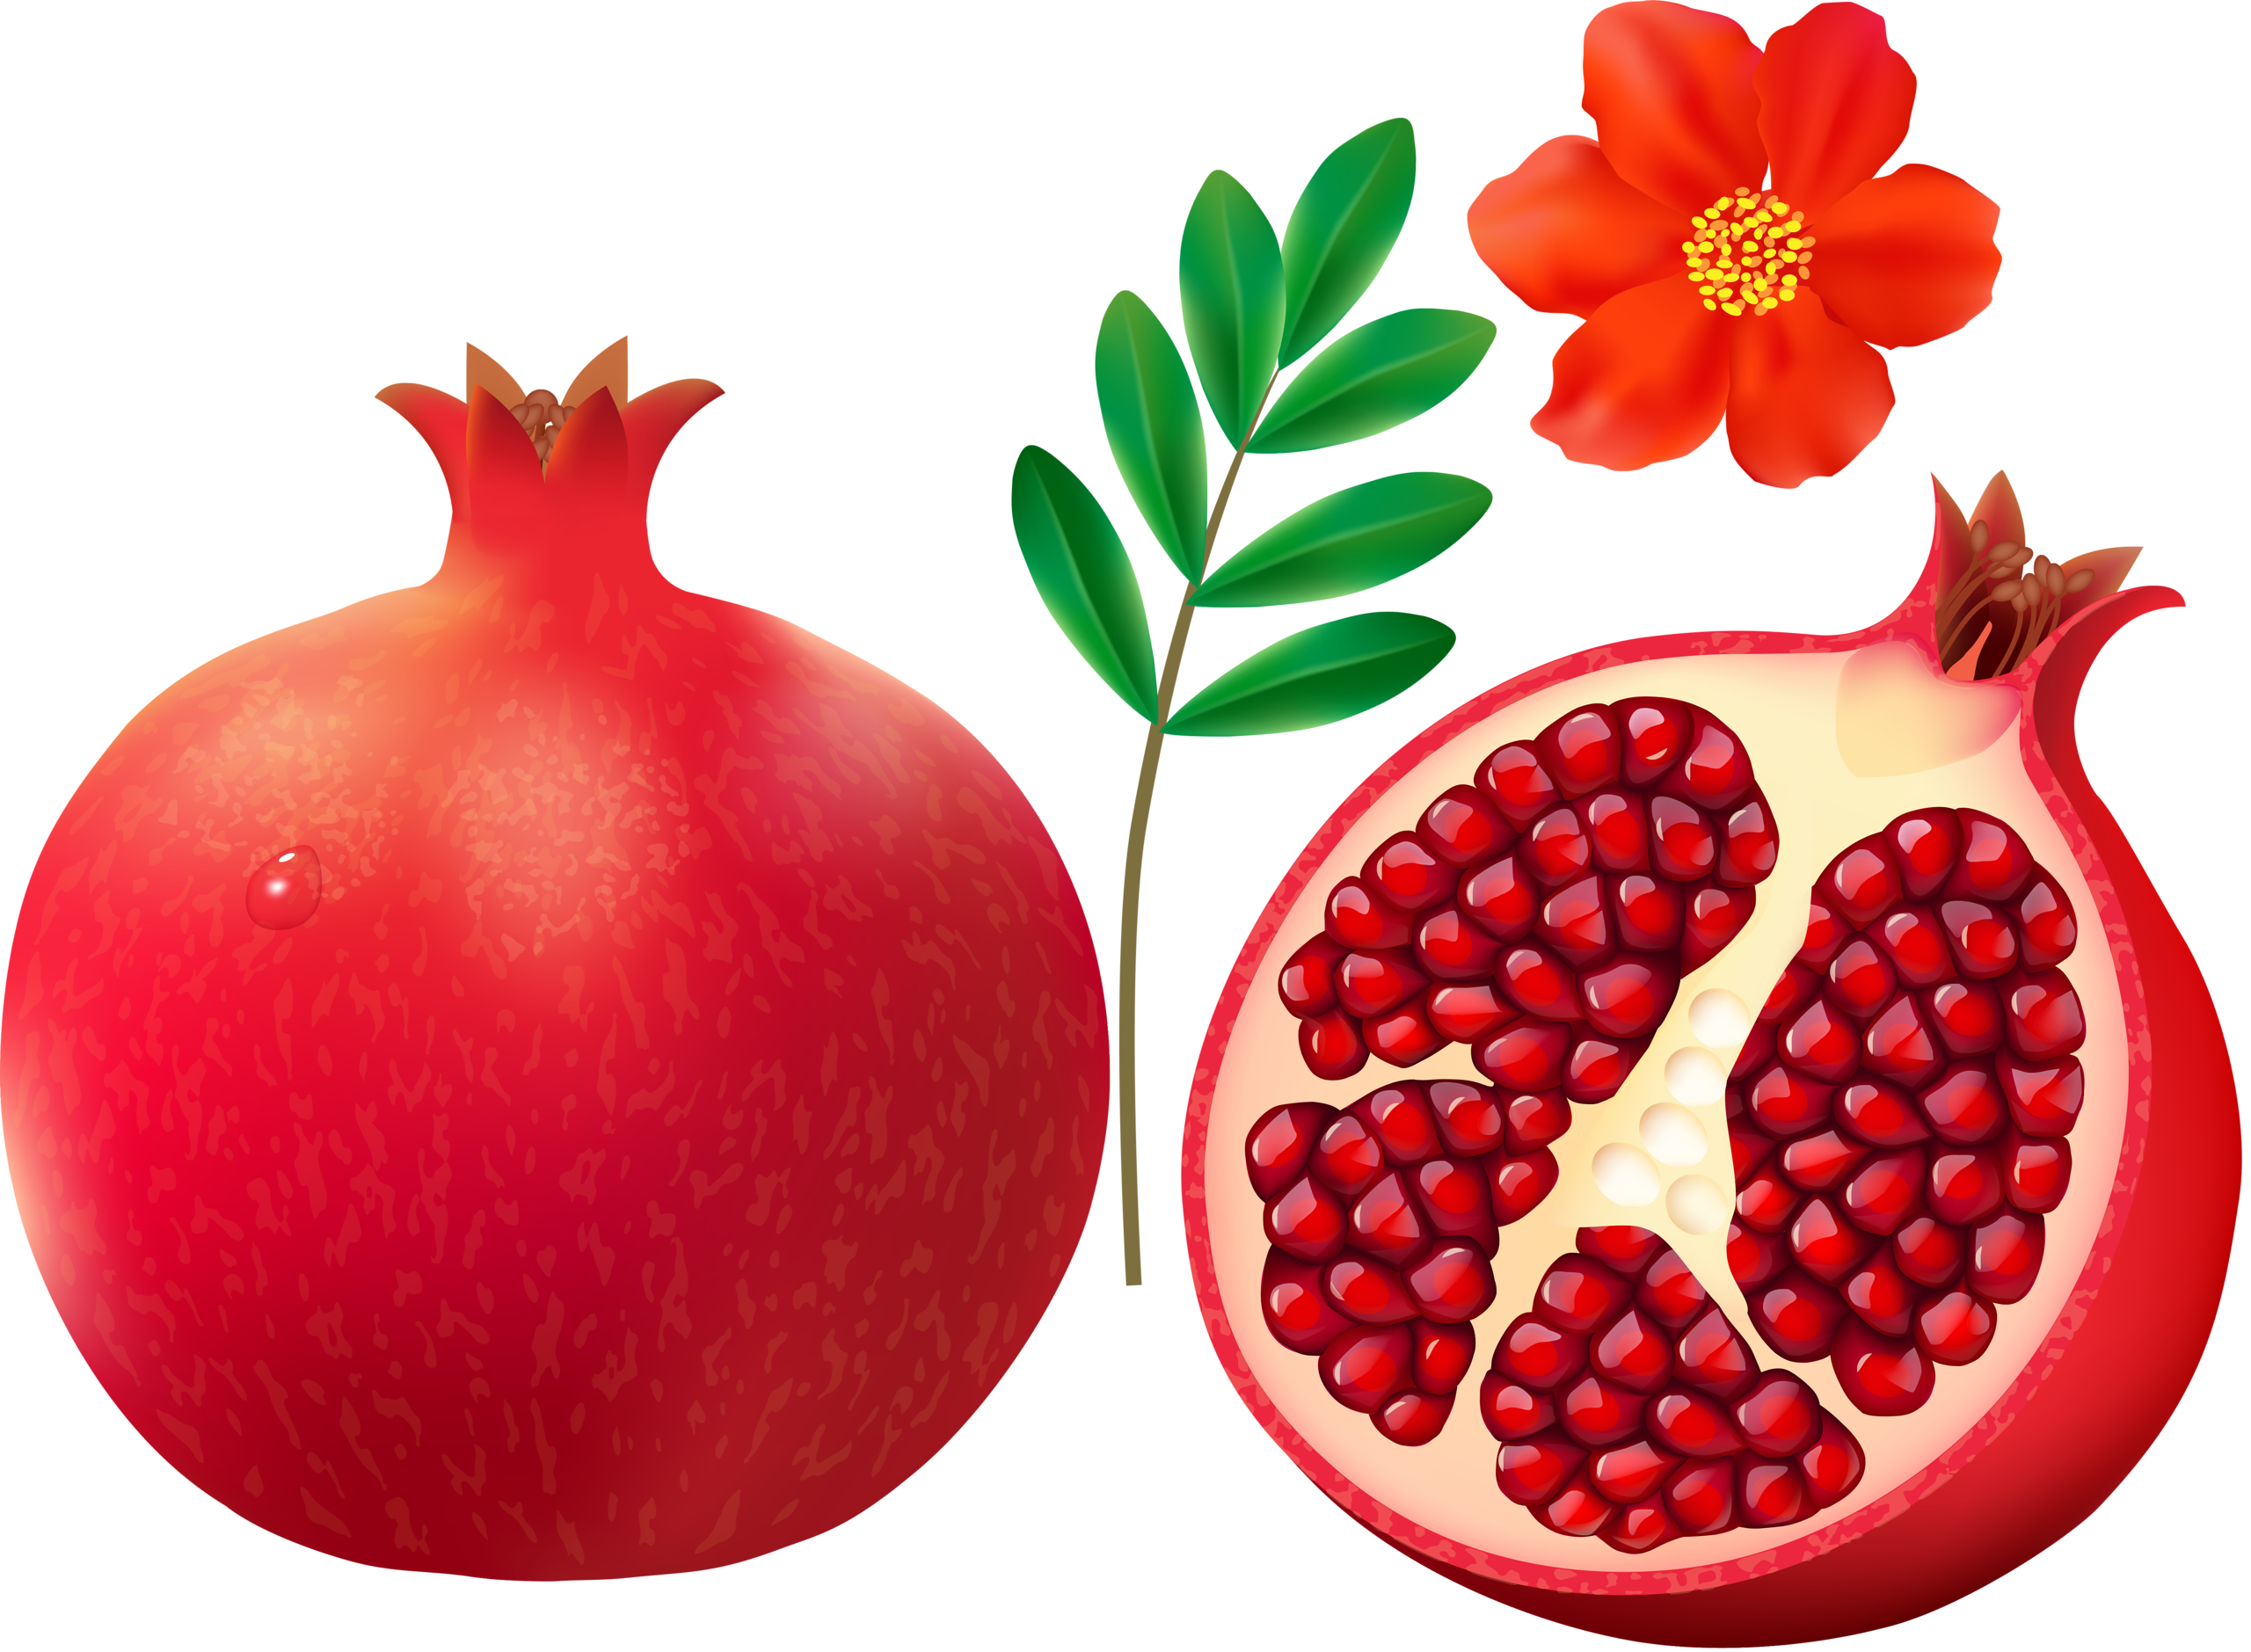 Fruits clipart pomegranate. On white background png